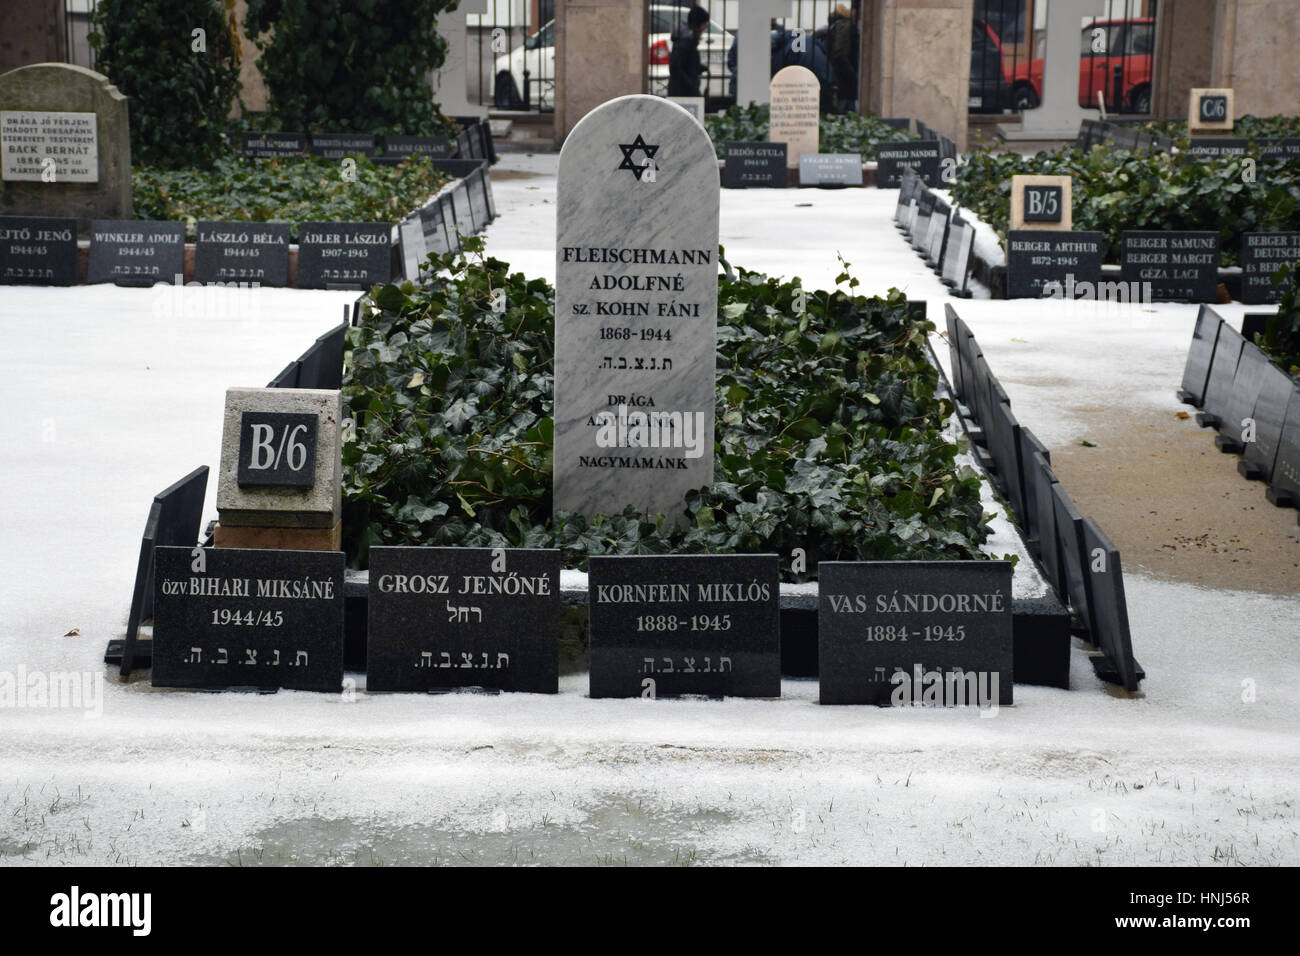 Budapest Grand Synagogue, Budapest, Hungary - mass graves from the Holocaust - Stock Image